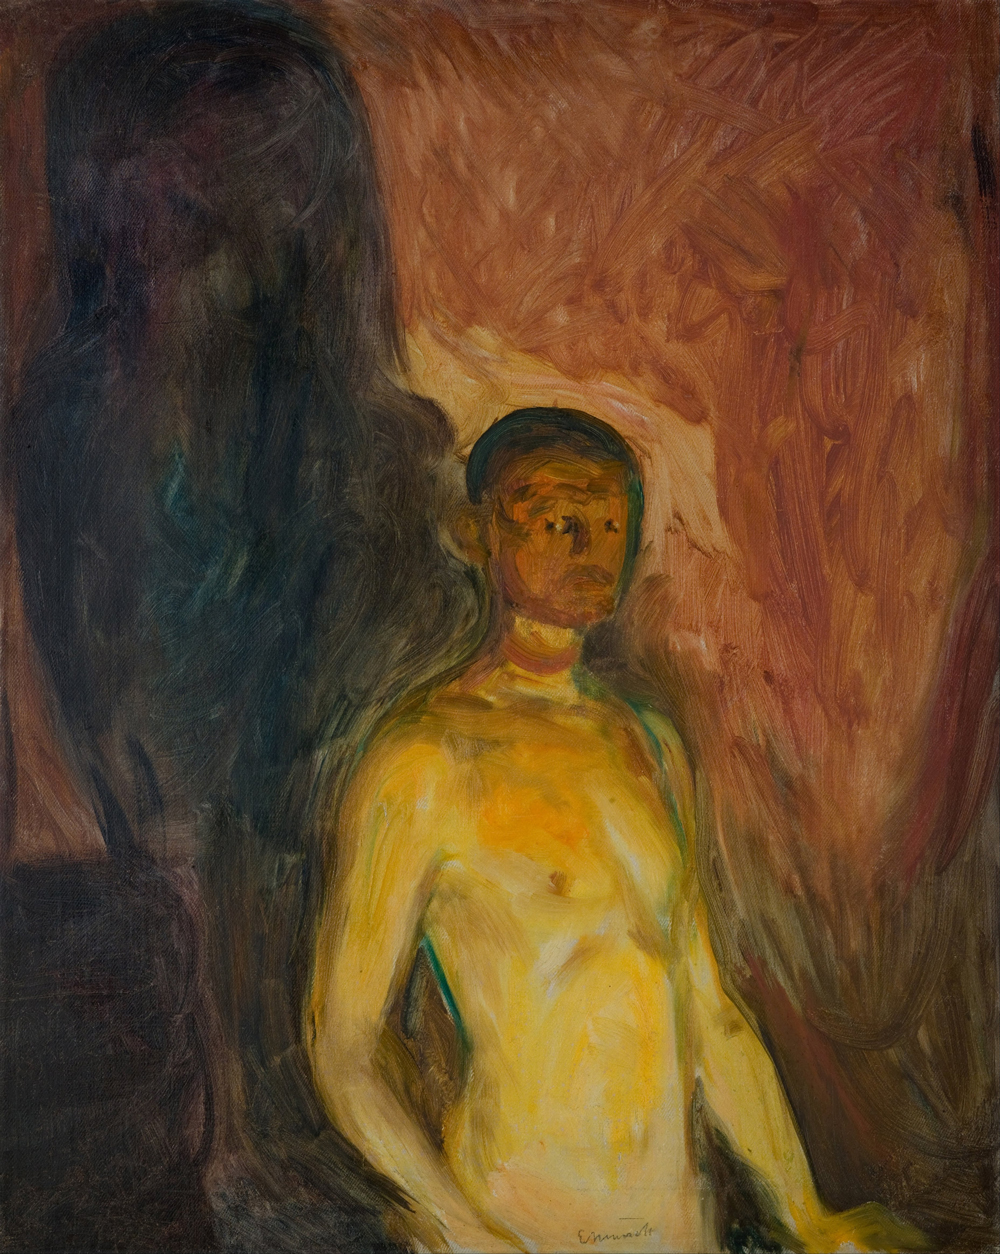 Edvard_Munch_-_Self-Portrait_in_Hell